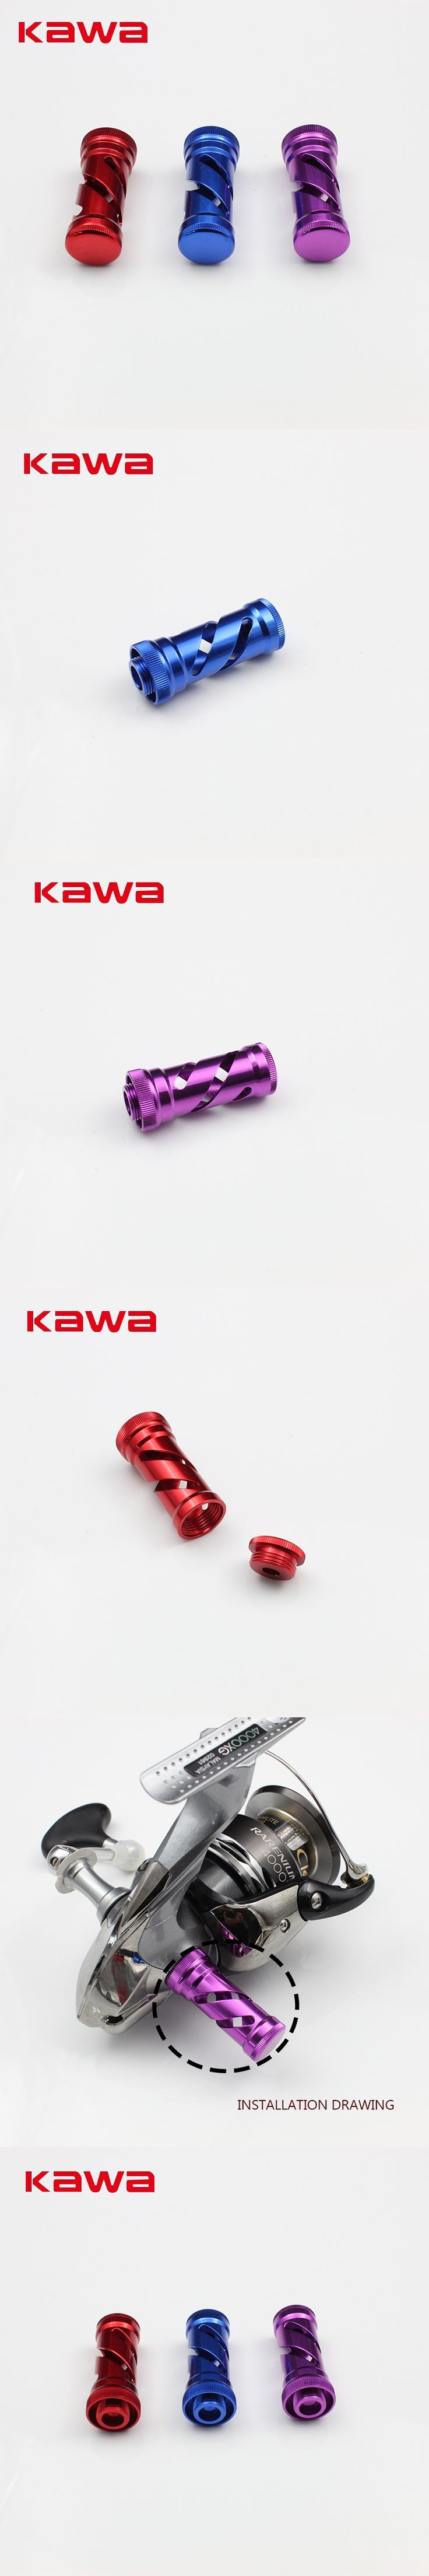 Kawa New Fishing Gear Fishing Reel for Spinning wheel Type, Fishing Reel Stand Accessory Suit for Shimano and Daiwa Reels